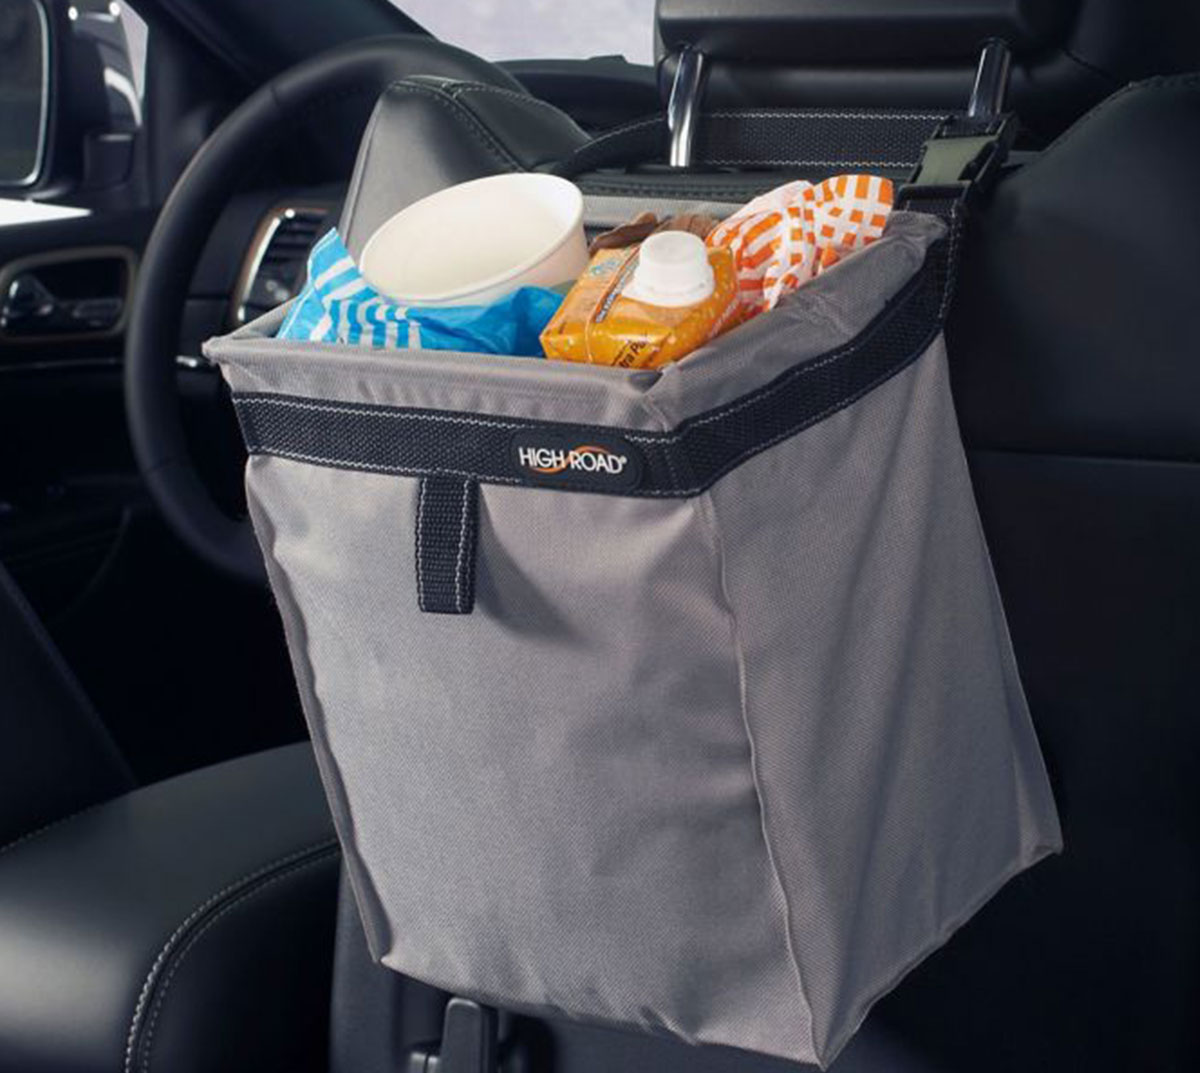 Declutter and organize car by investing in a car trash bag